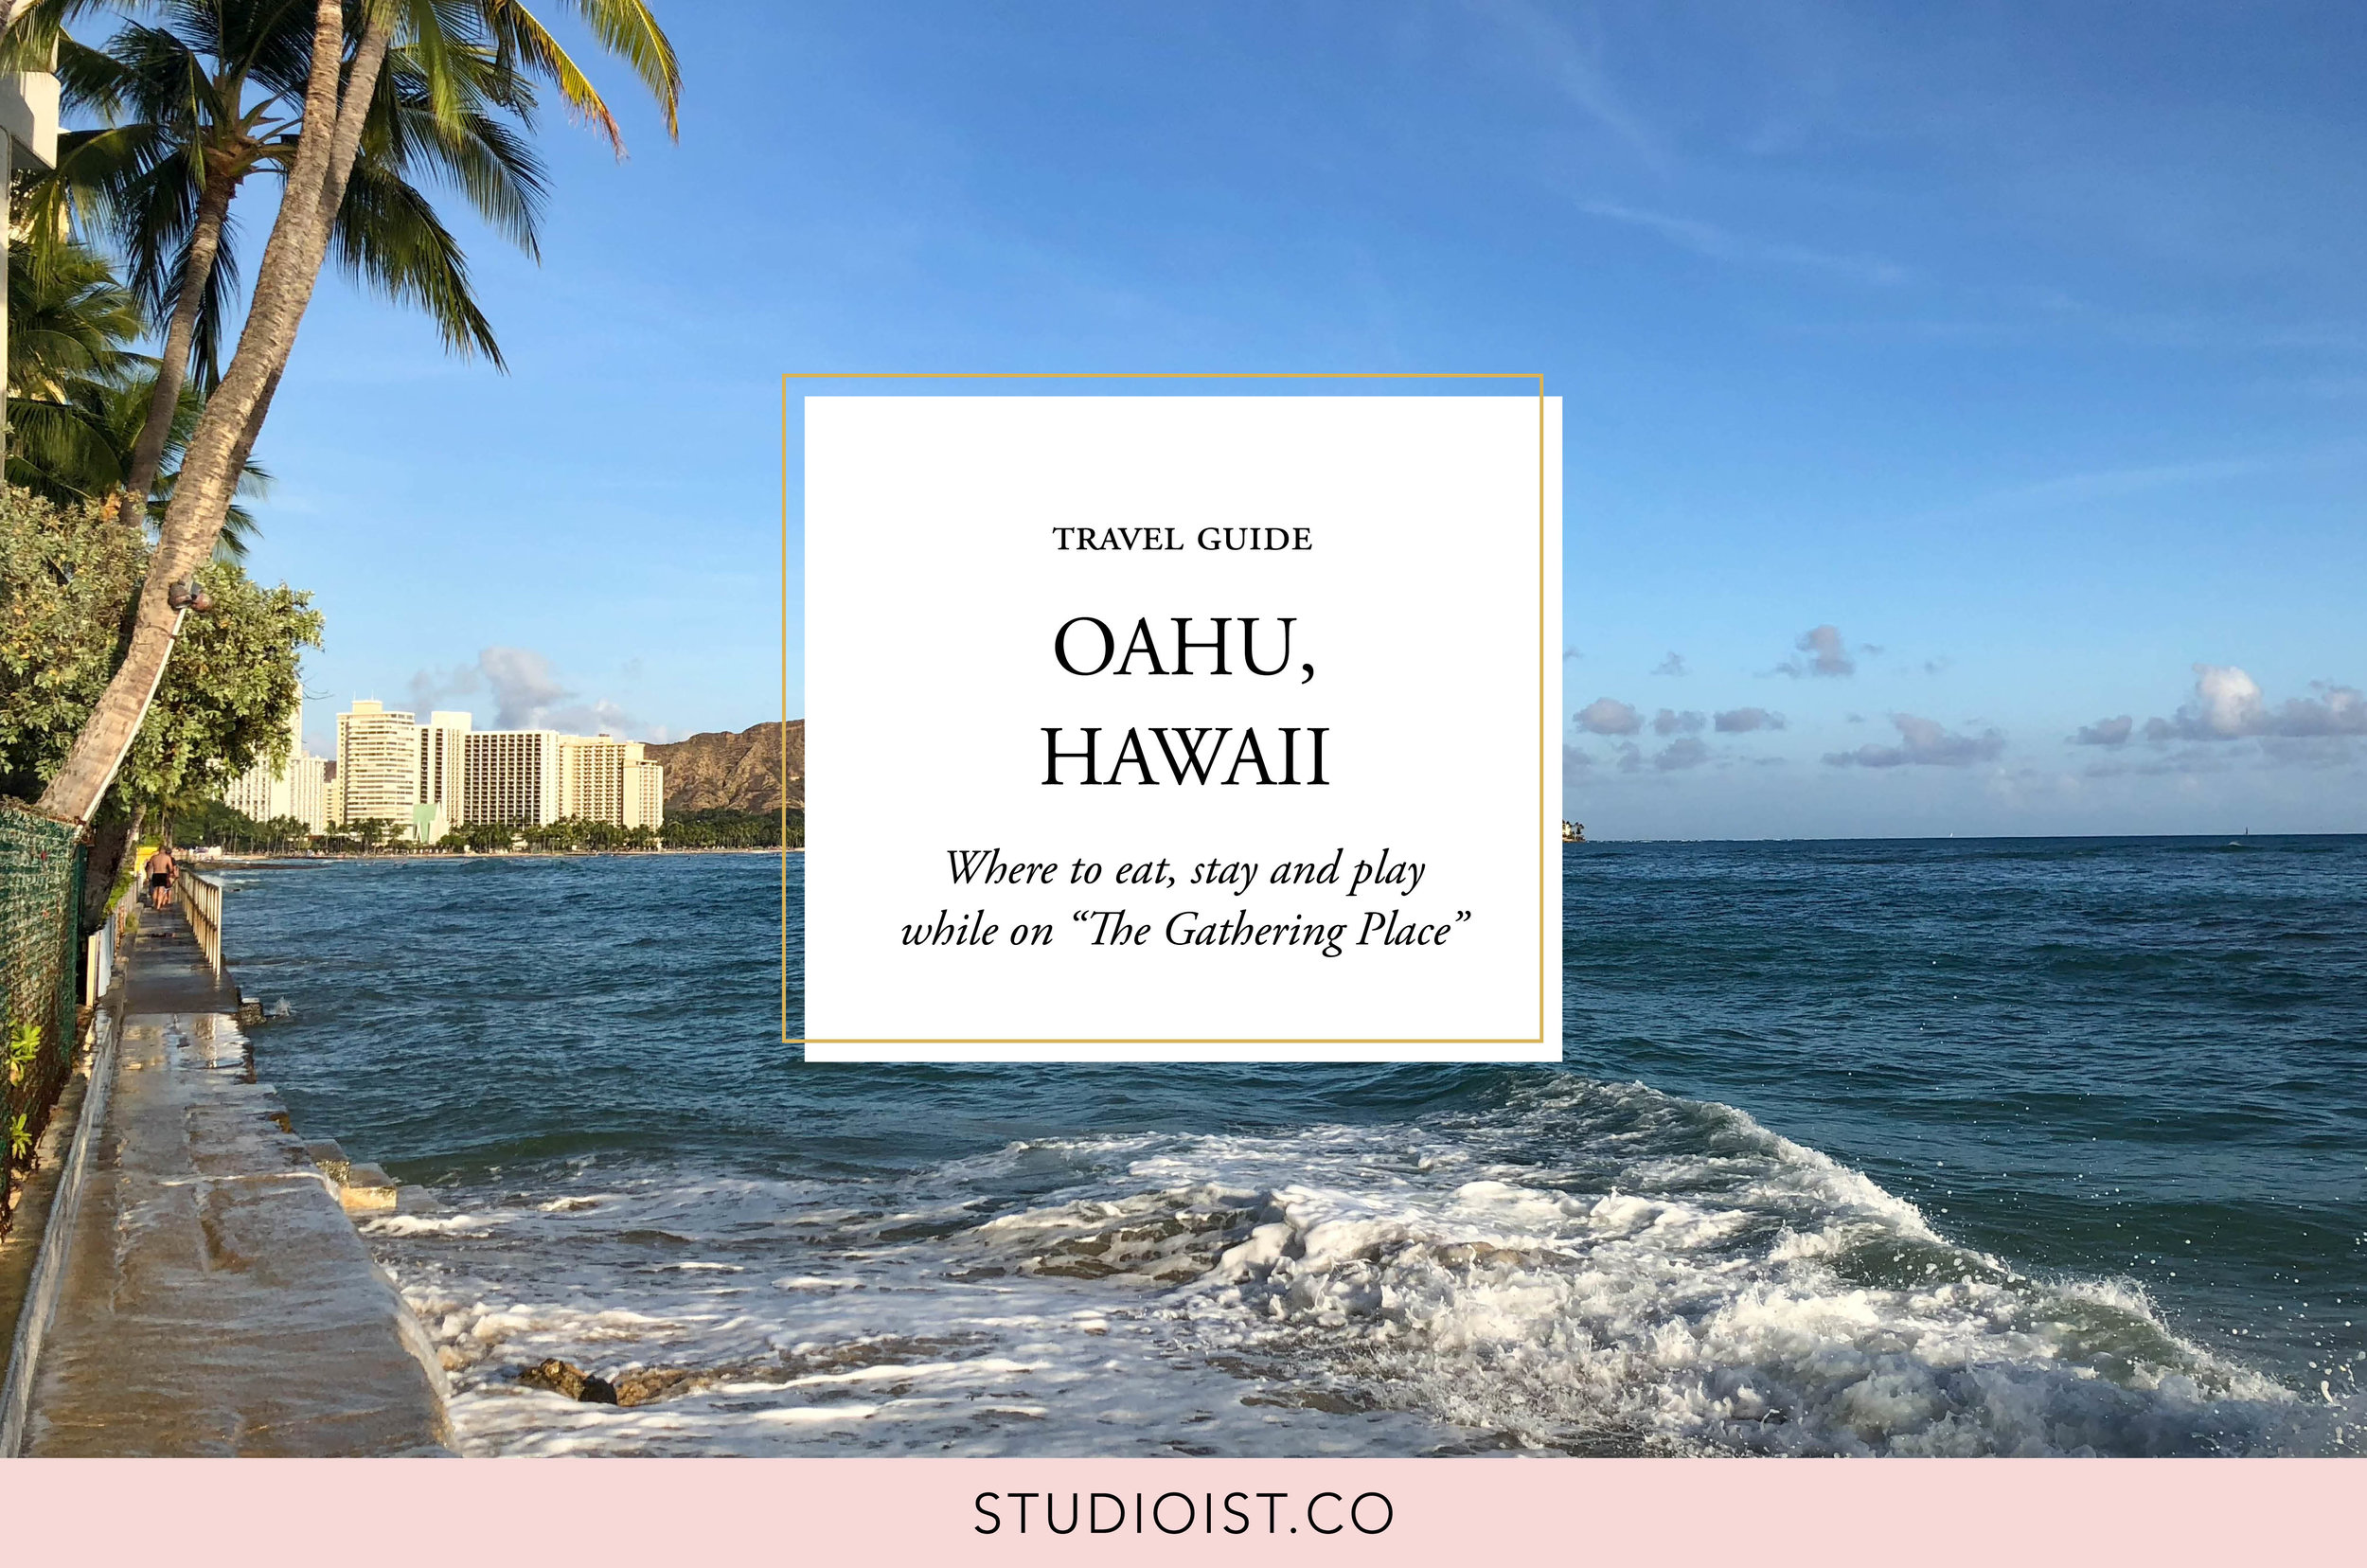 Studioist_Travel Cover Photos_Oahu Guide.jpg